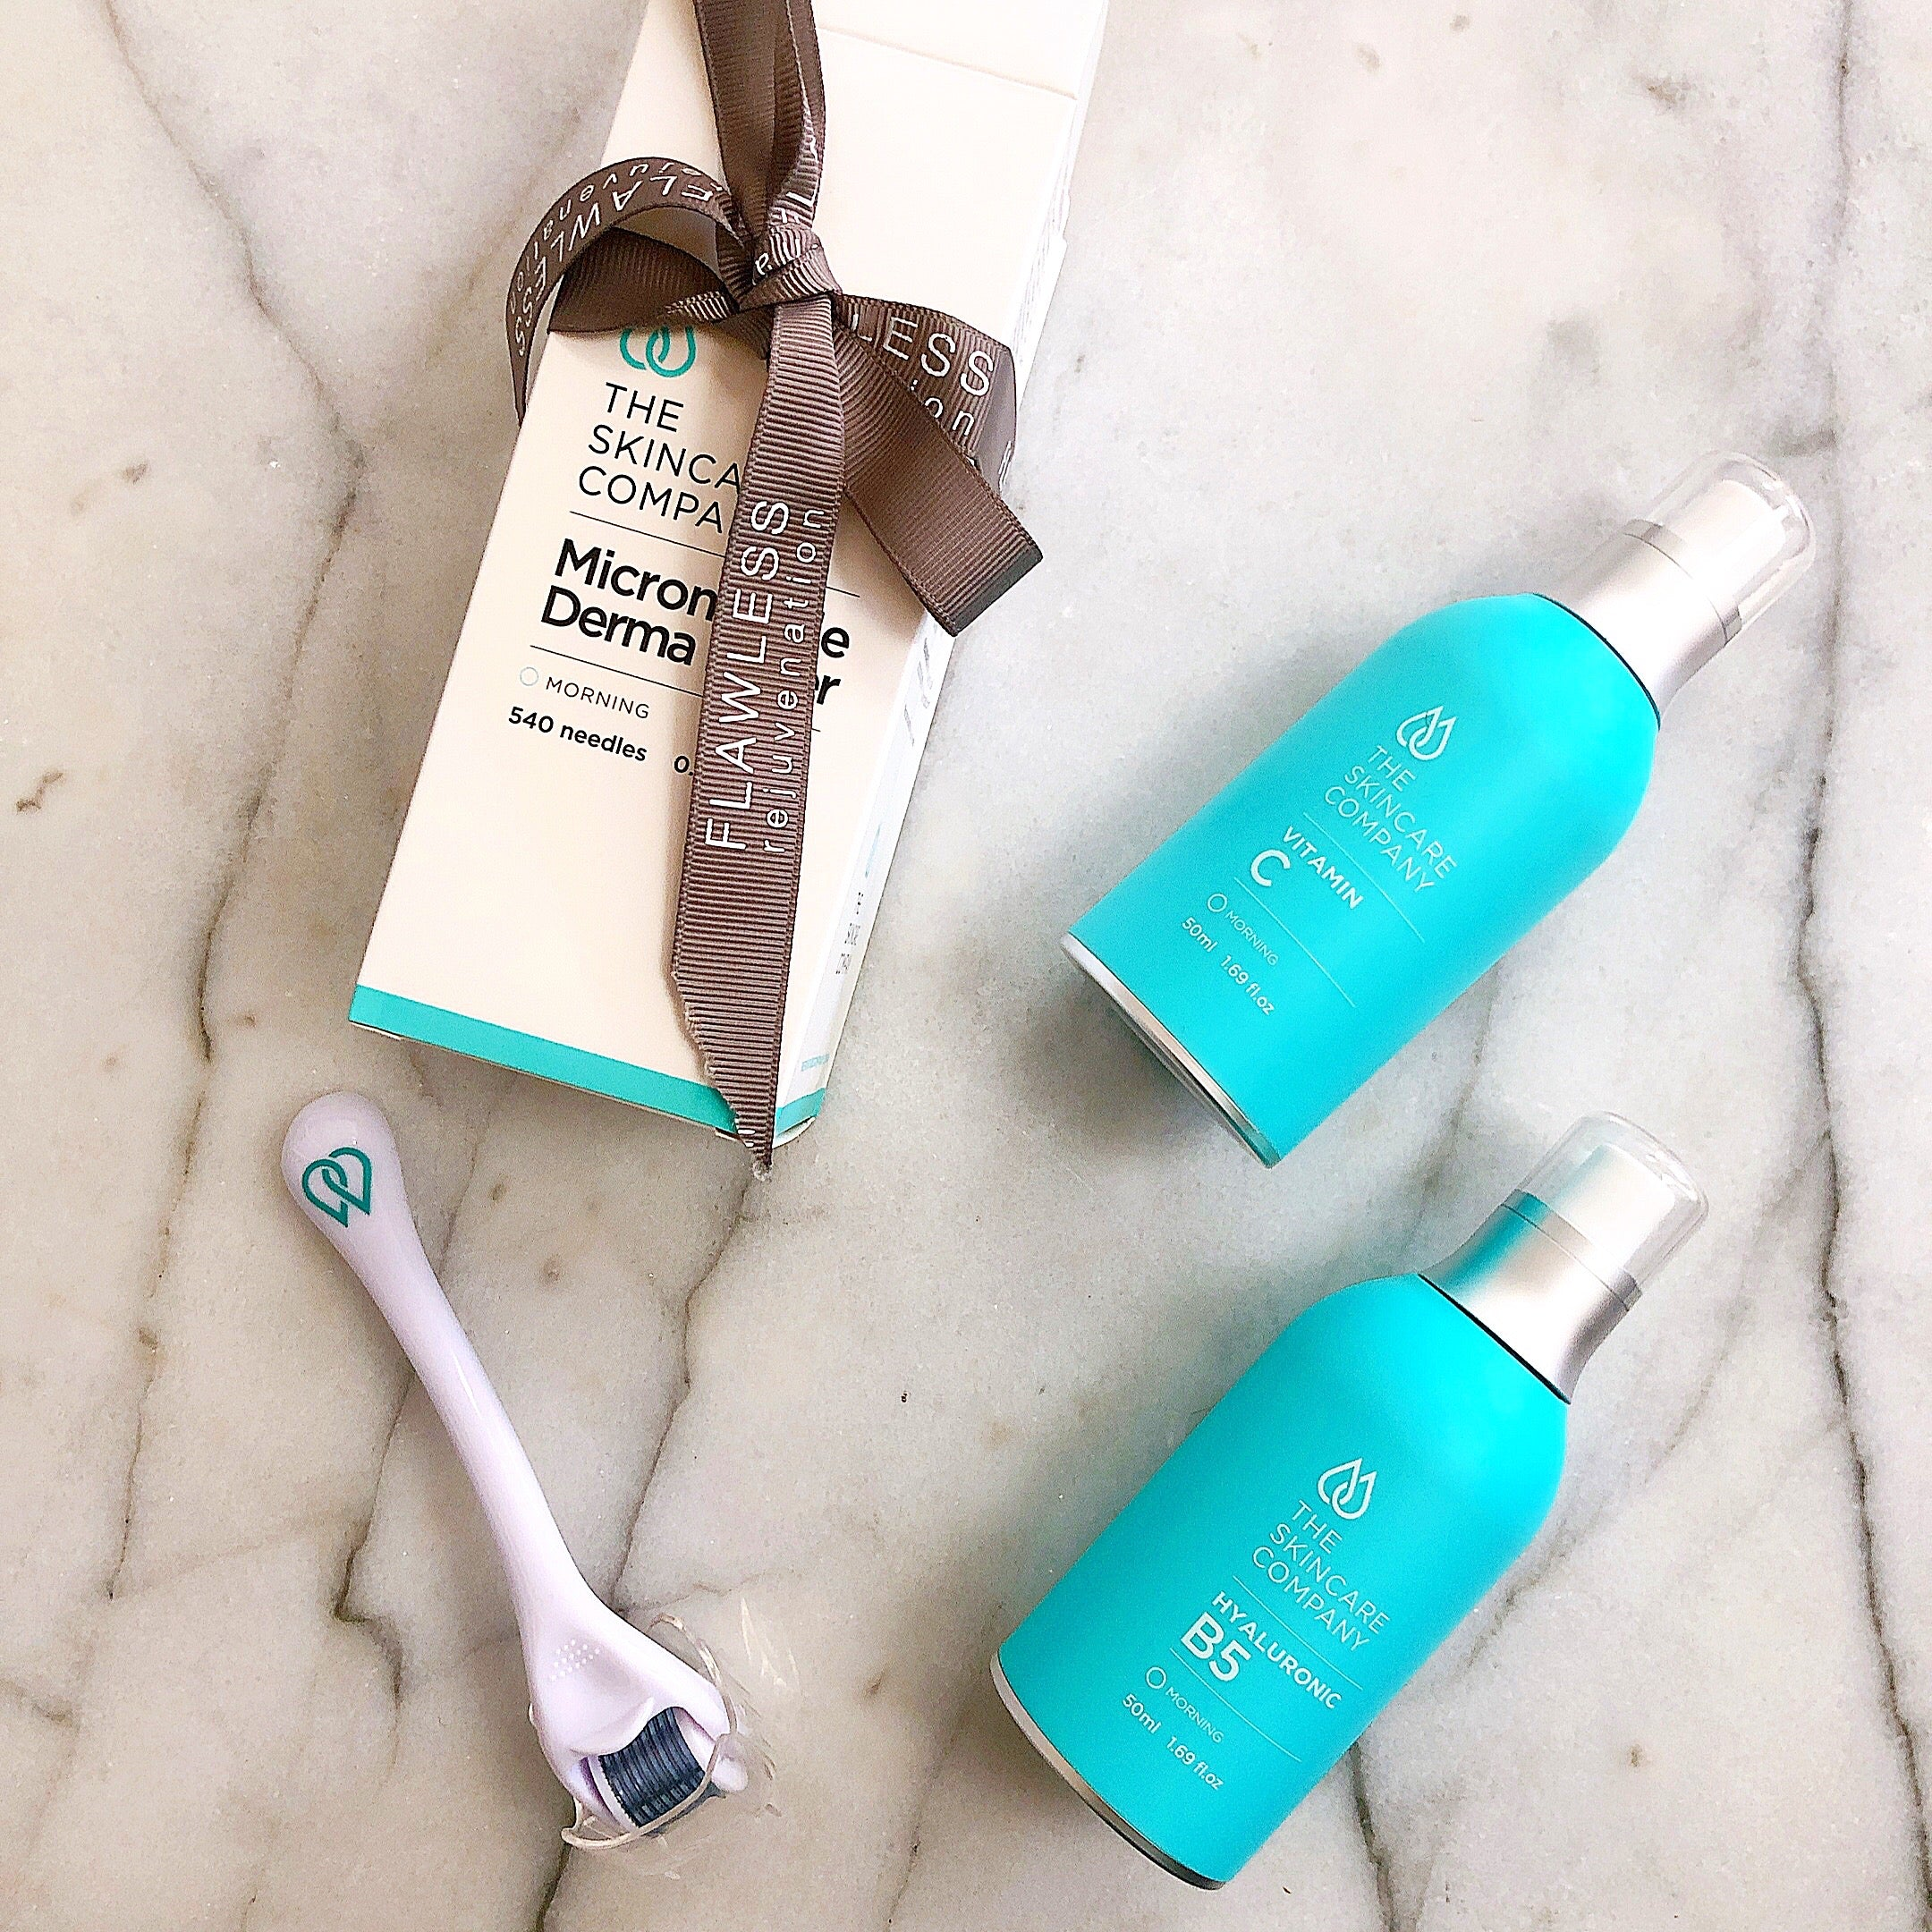 Derma Roller & Serum Duo Pack -  The Skincare Company Hydrate and Brighten